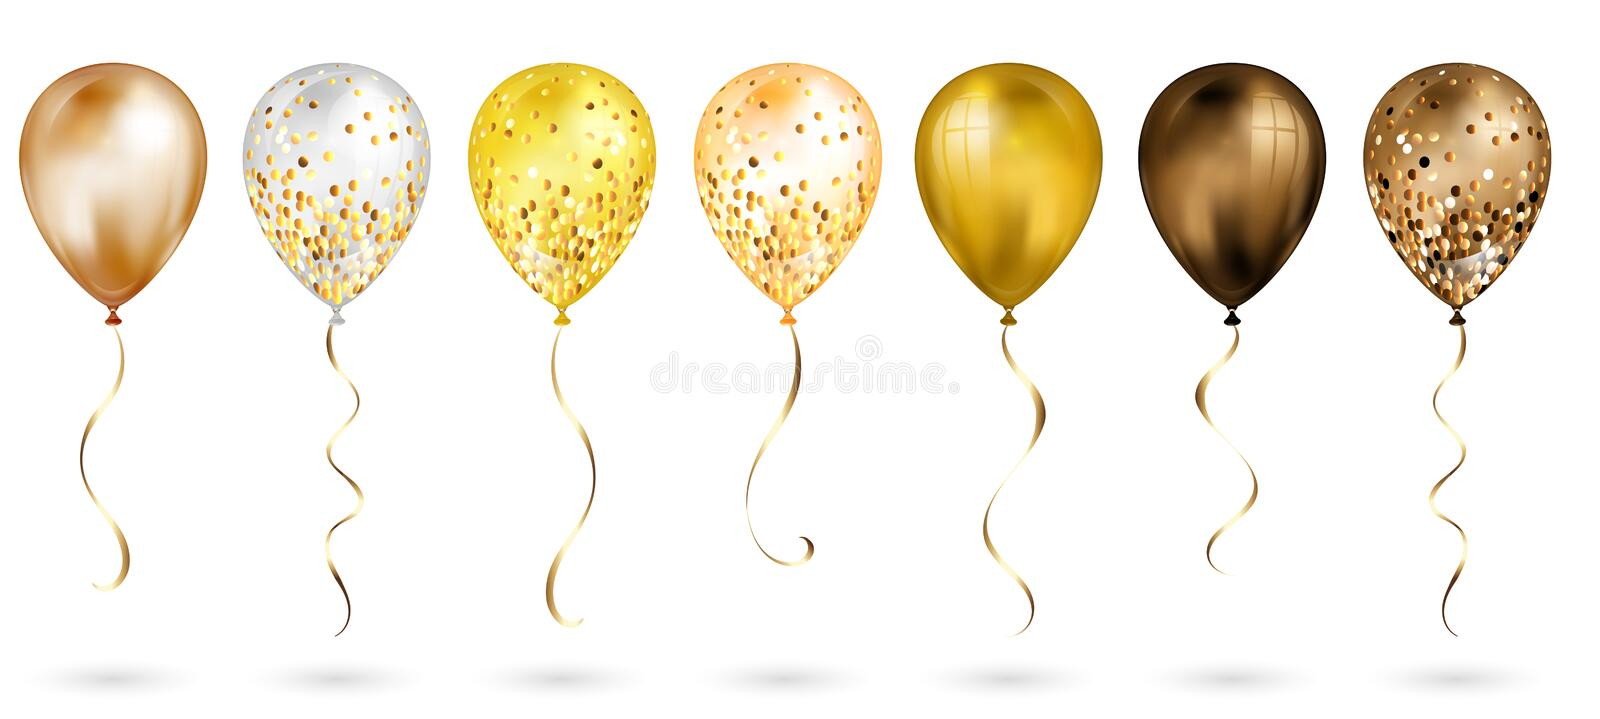 Set of 7 shiny gold realistic 3D helium balloons for your design. Glossy balloons with glitter and gold ribbon, perfect decoration. For birthday party brochures royalty free illustration